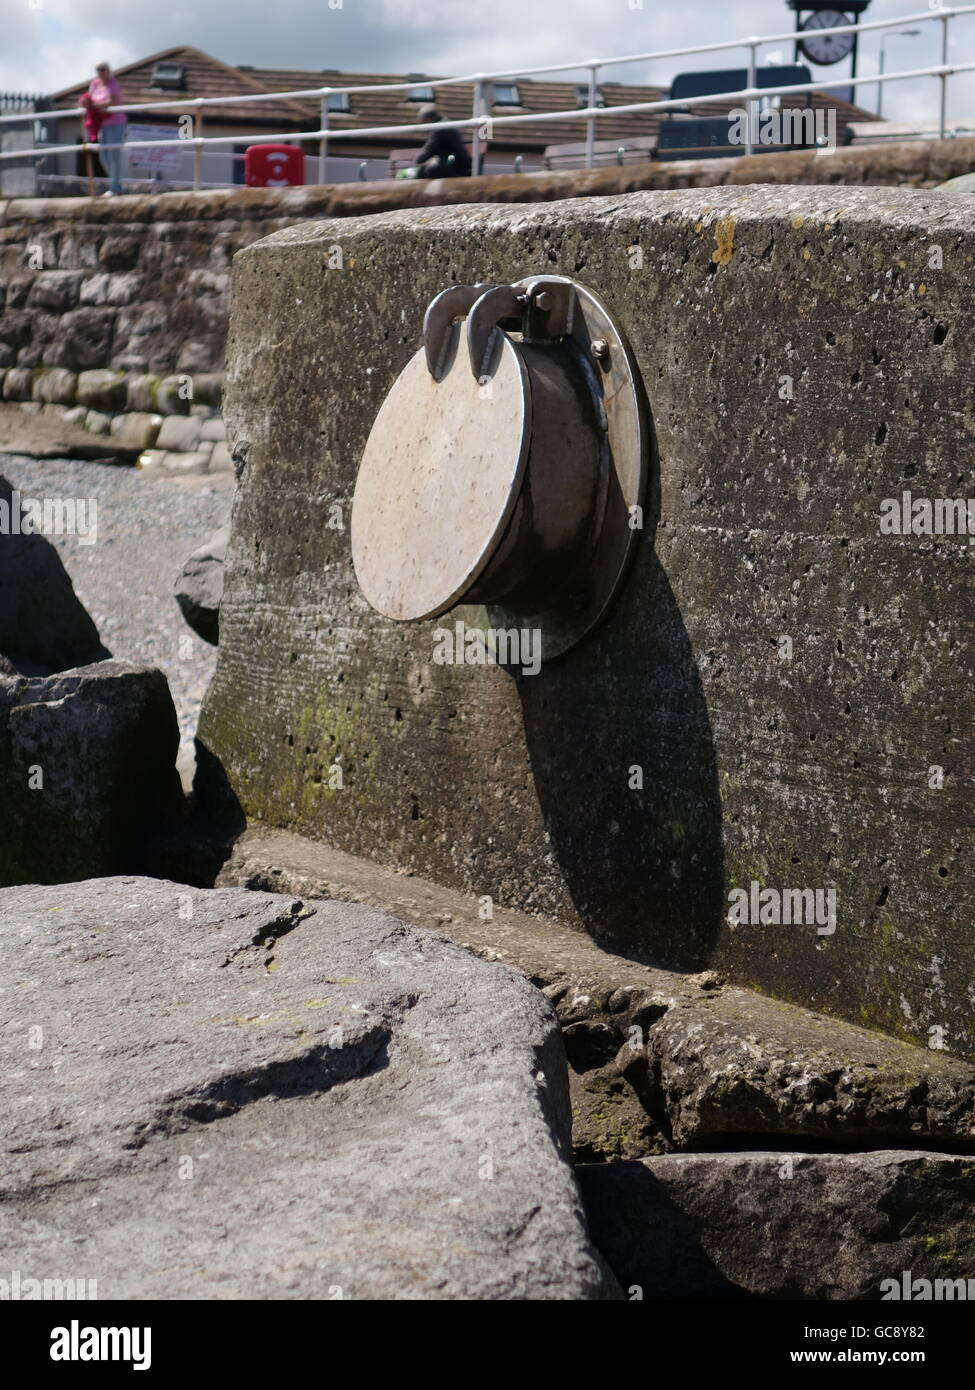 A unusual drainage pipe on a beach - Stock Image